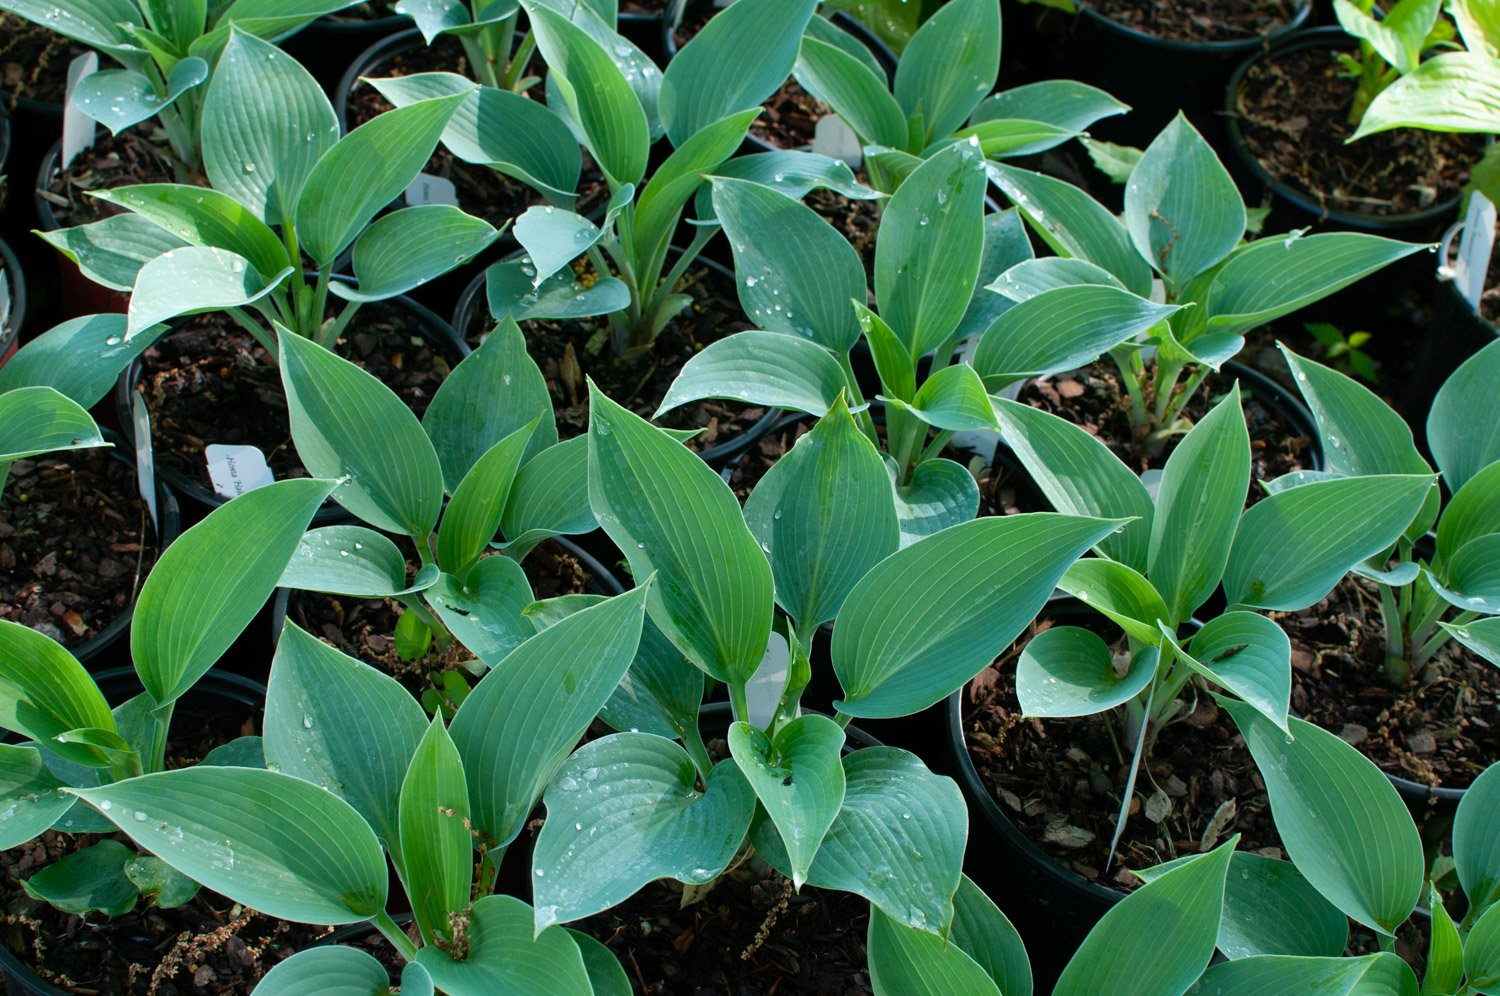 Hosta 'Halcyon' with water droplets on ribbed leaves